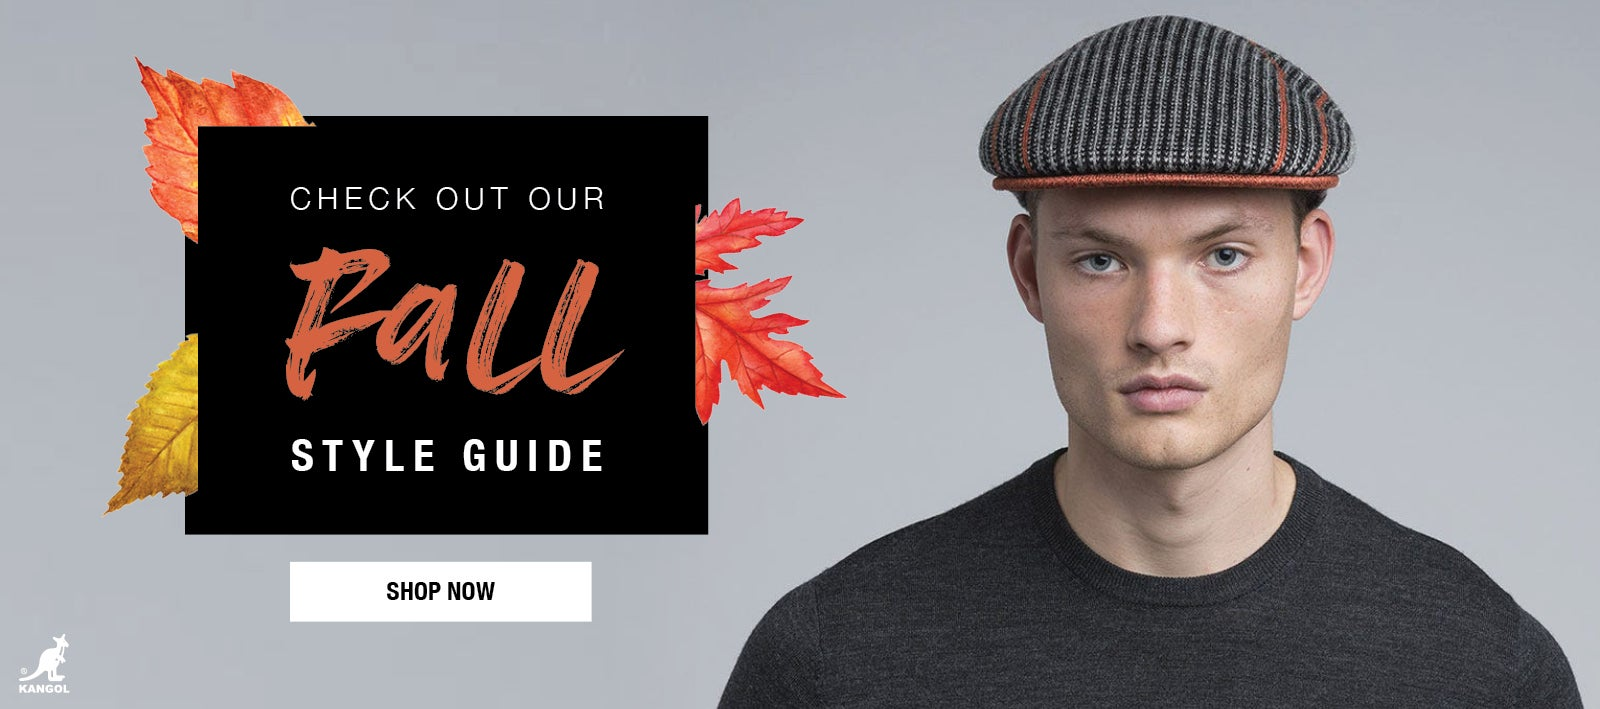 Shop Our Fall Styles